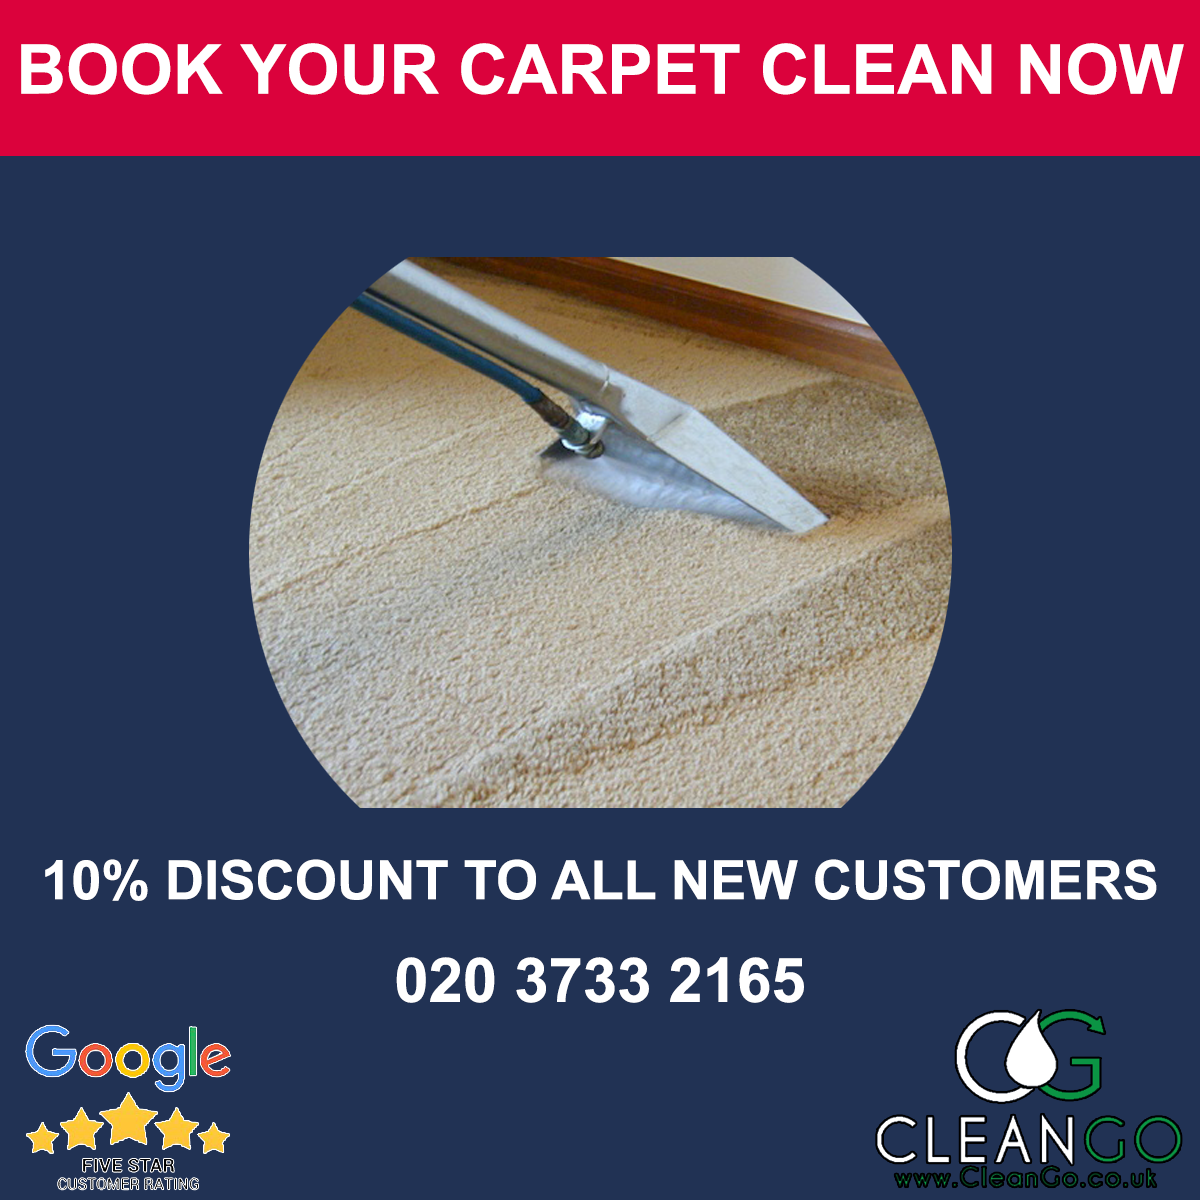 Carpet Cleaning Buckhurst Hill - Professional Carpet Cleaning Near Buckhurst Hill